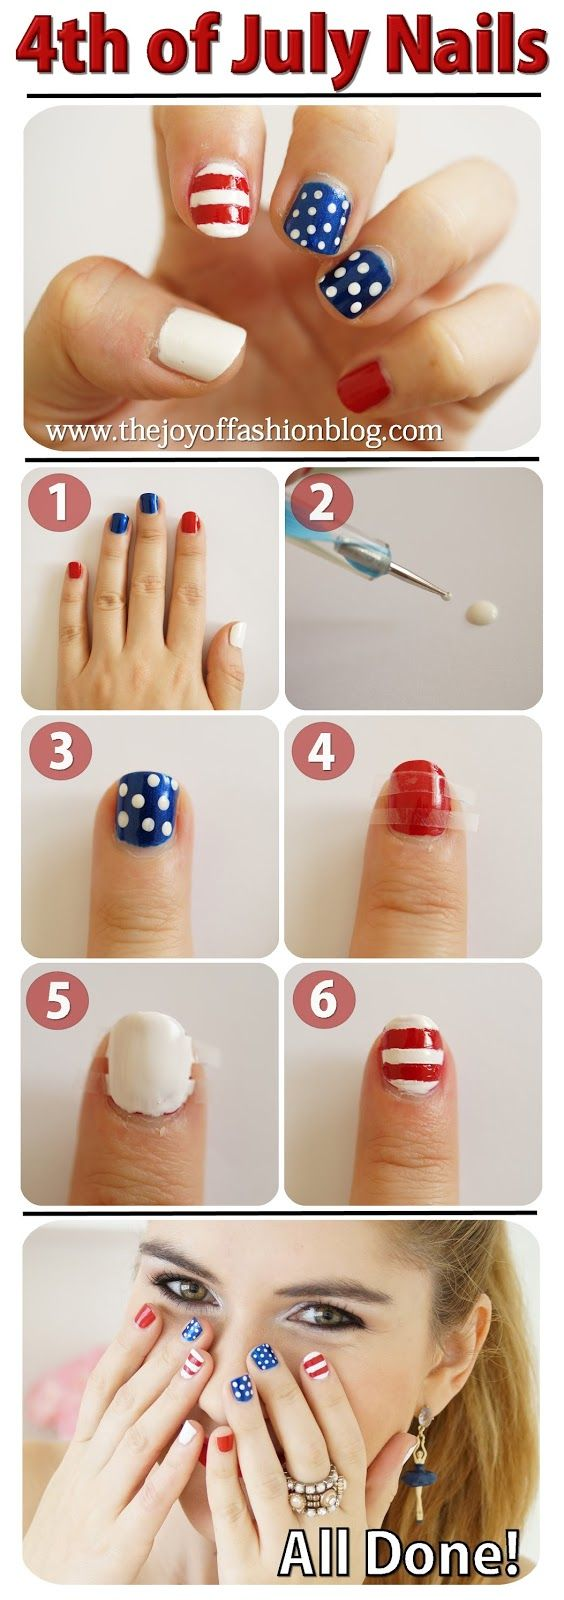 4th of July Nails Tutorial -- Easy and cute!